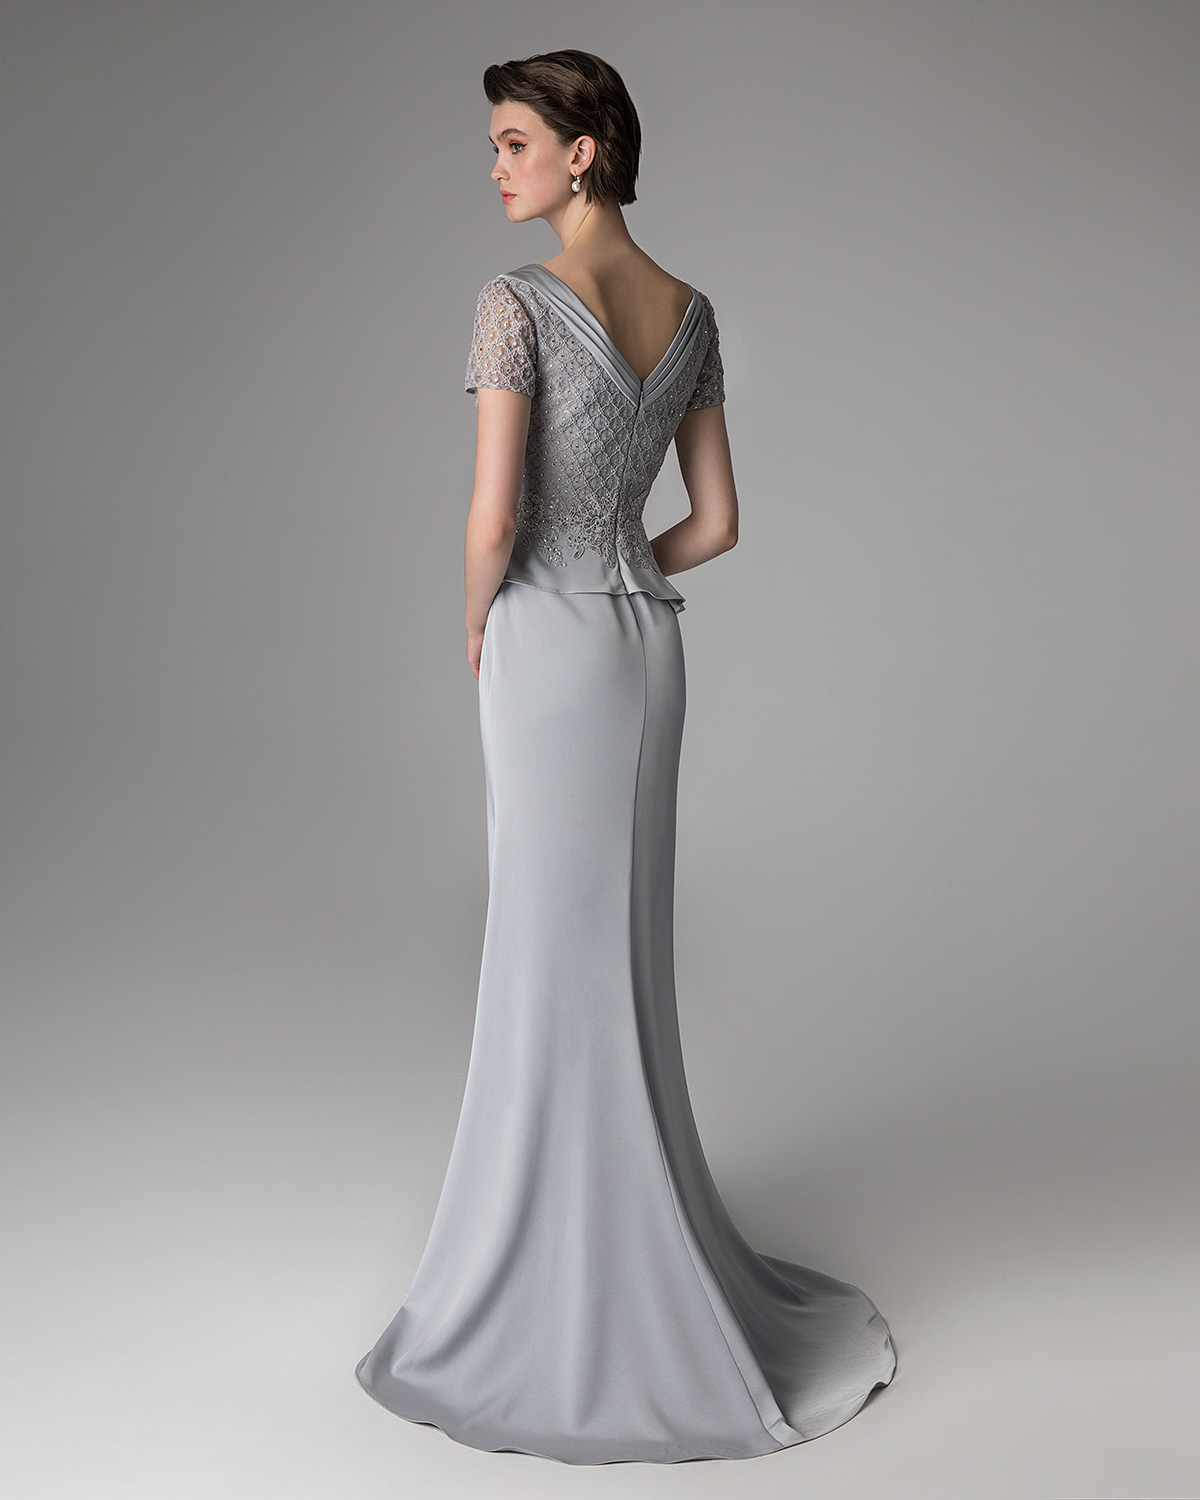 Classic Dresses / Long evening dress with lace top and beading